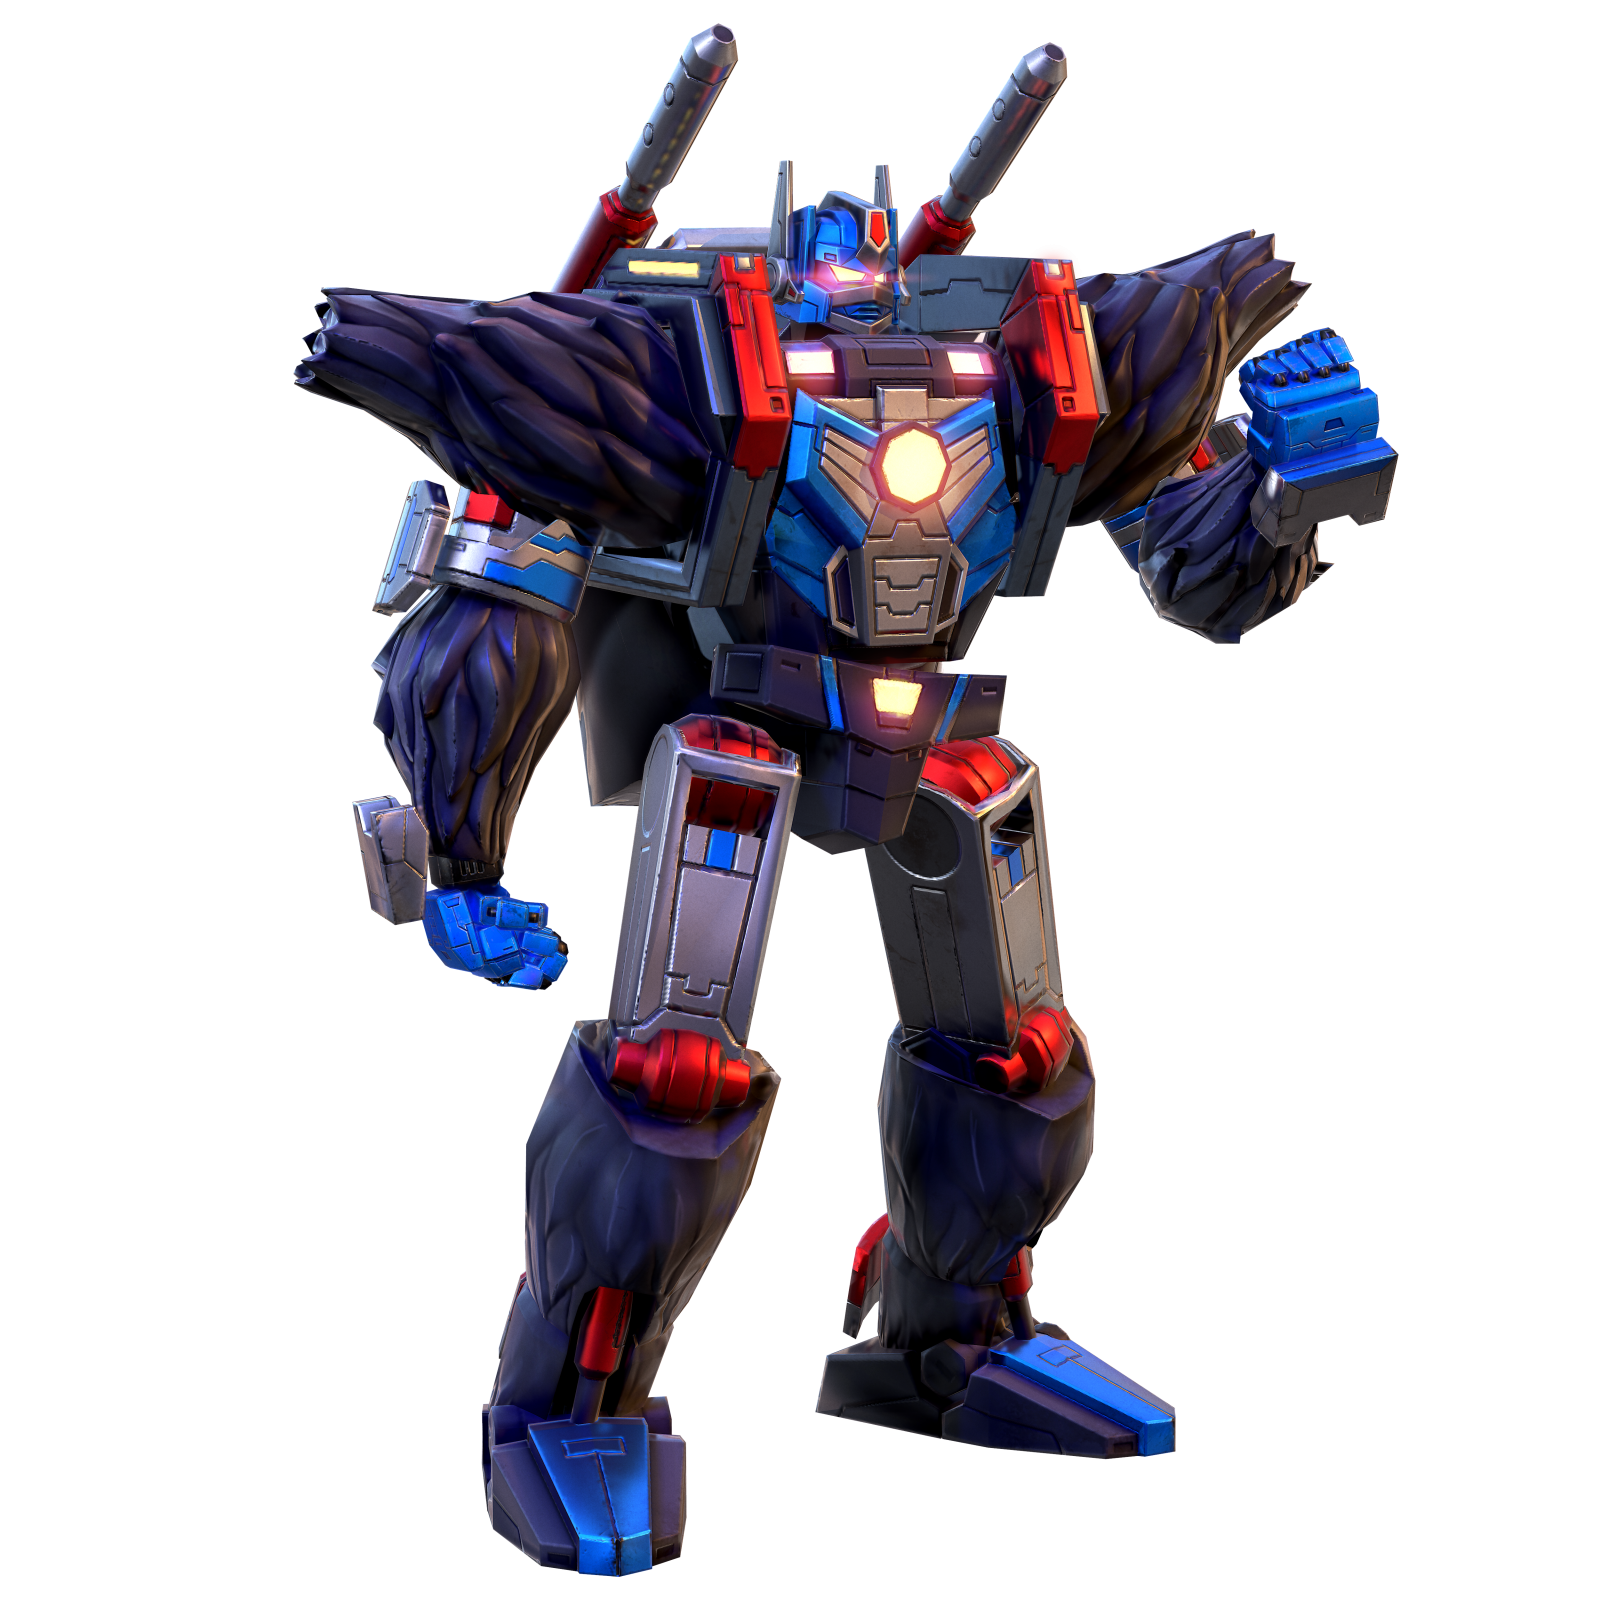 Transformers News: Updates on Transformers: Earth Wars Beast Wars: New Comic, Optimus Primal, Megatron